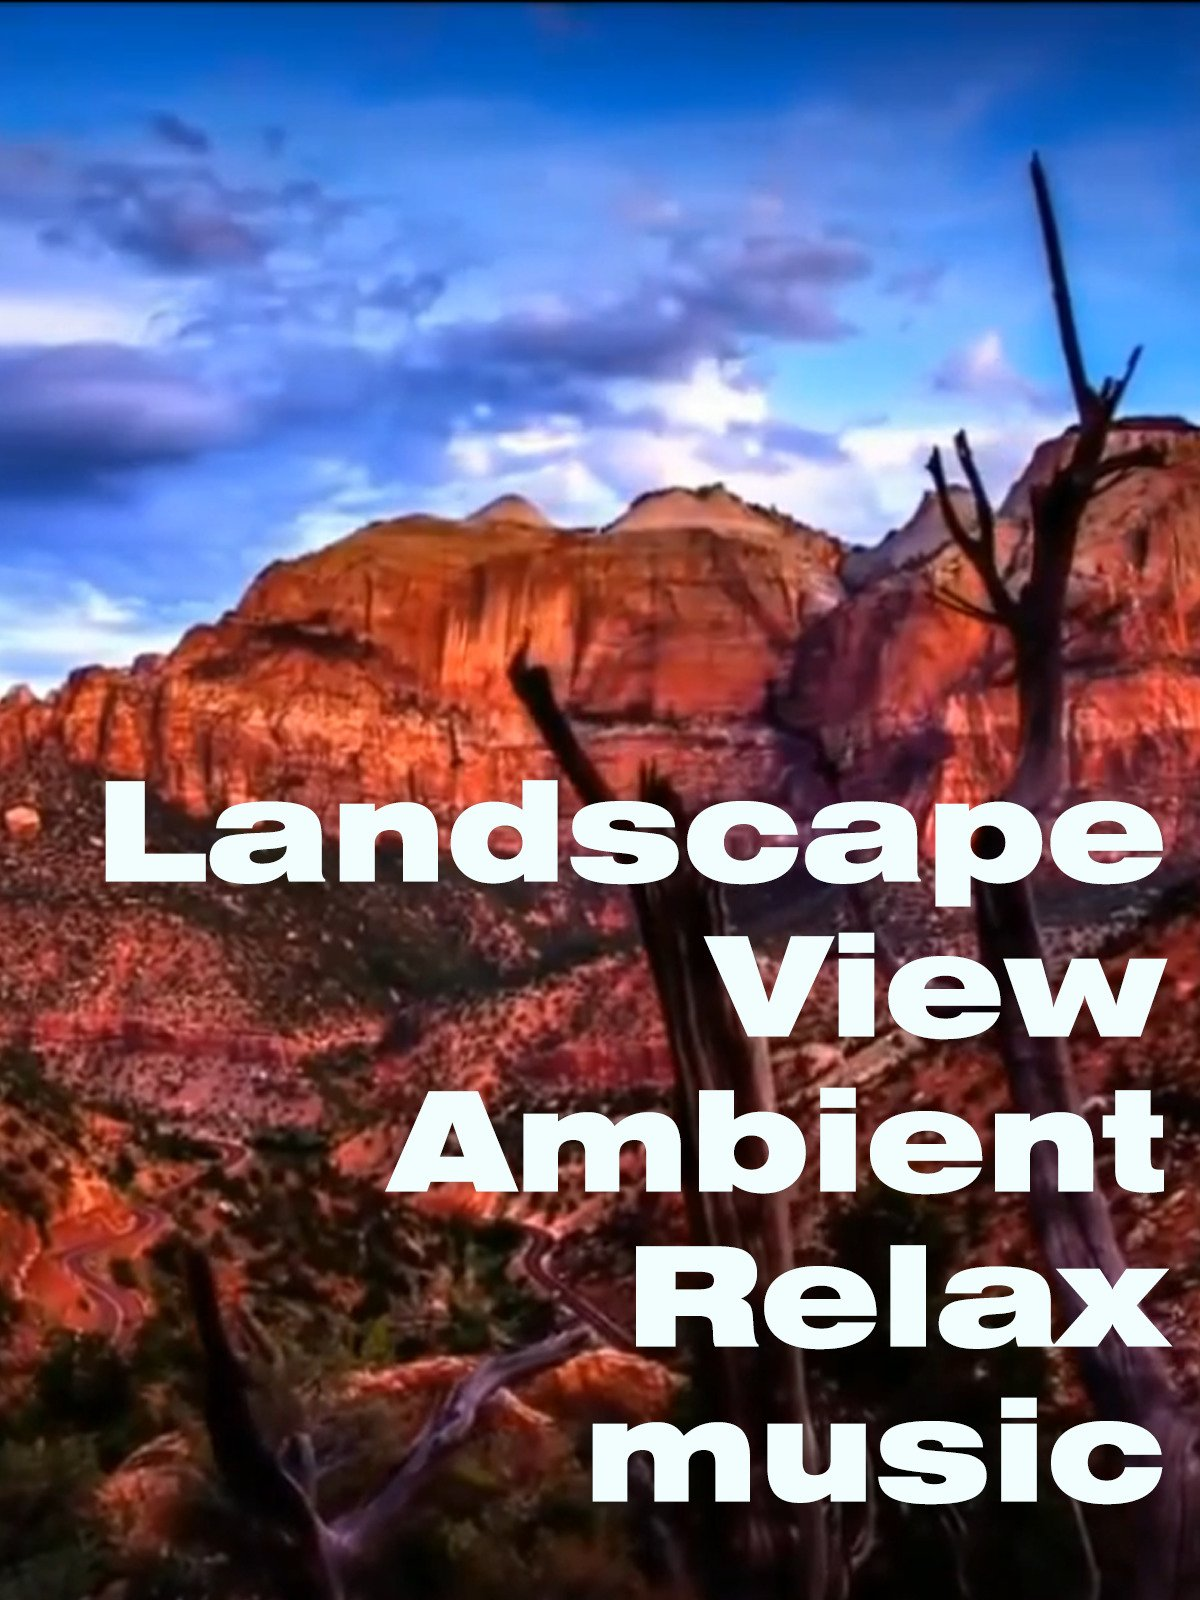 Landscape View Ambient Relax Music